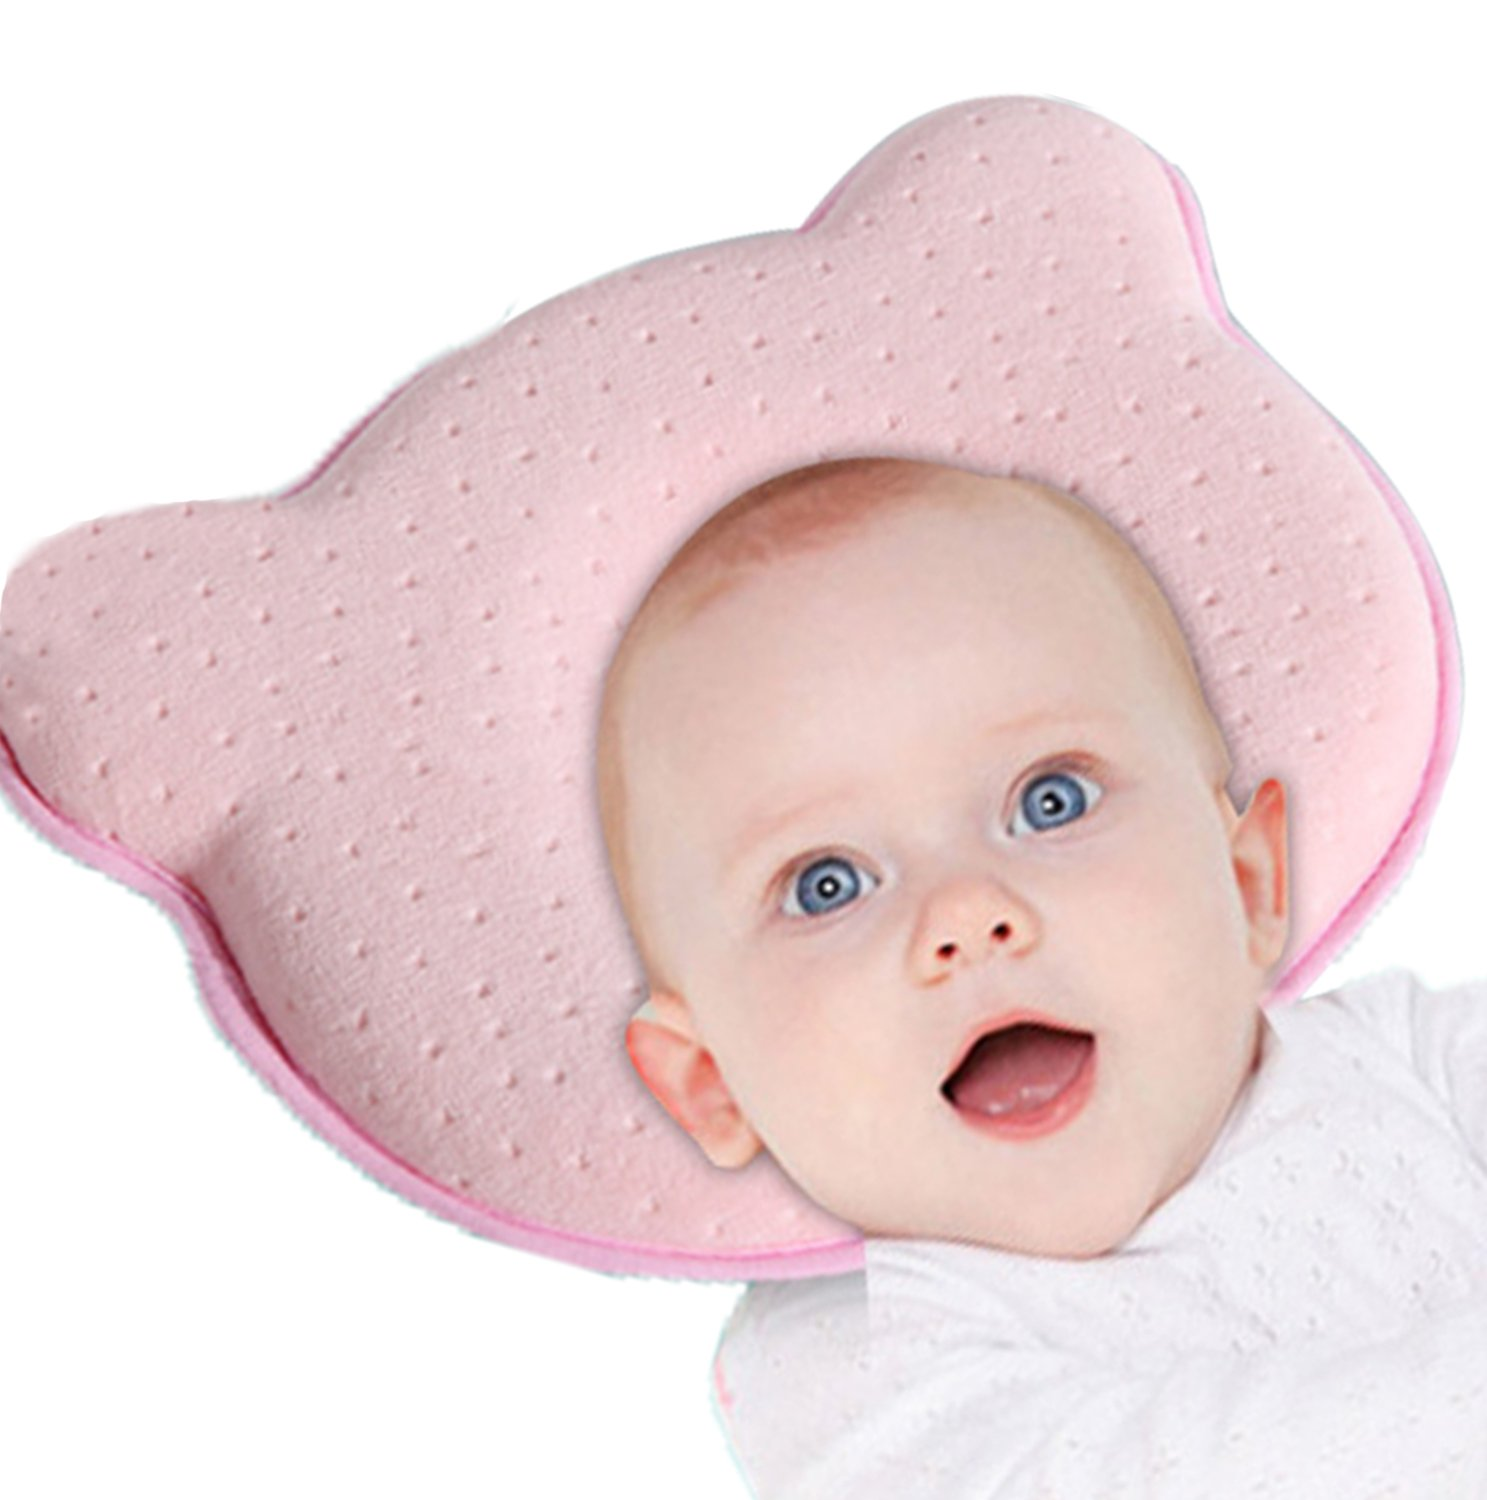 Baby Pillow - Preventing Flat Head Syndrome for Your Newborn Baby Avoid Plagiocephaly Memory Foam Breathable Pillow (Pink) flyhome